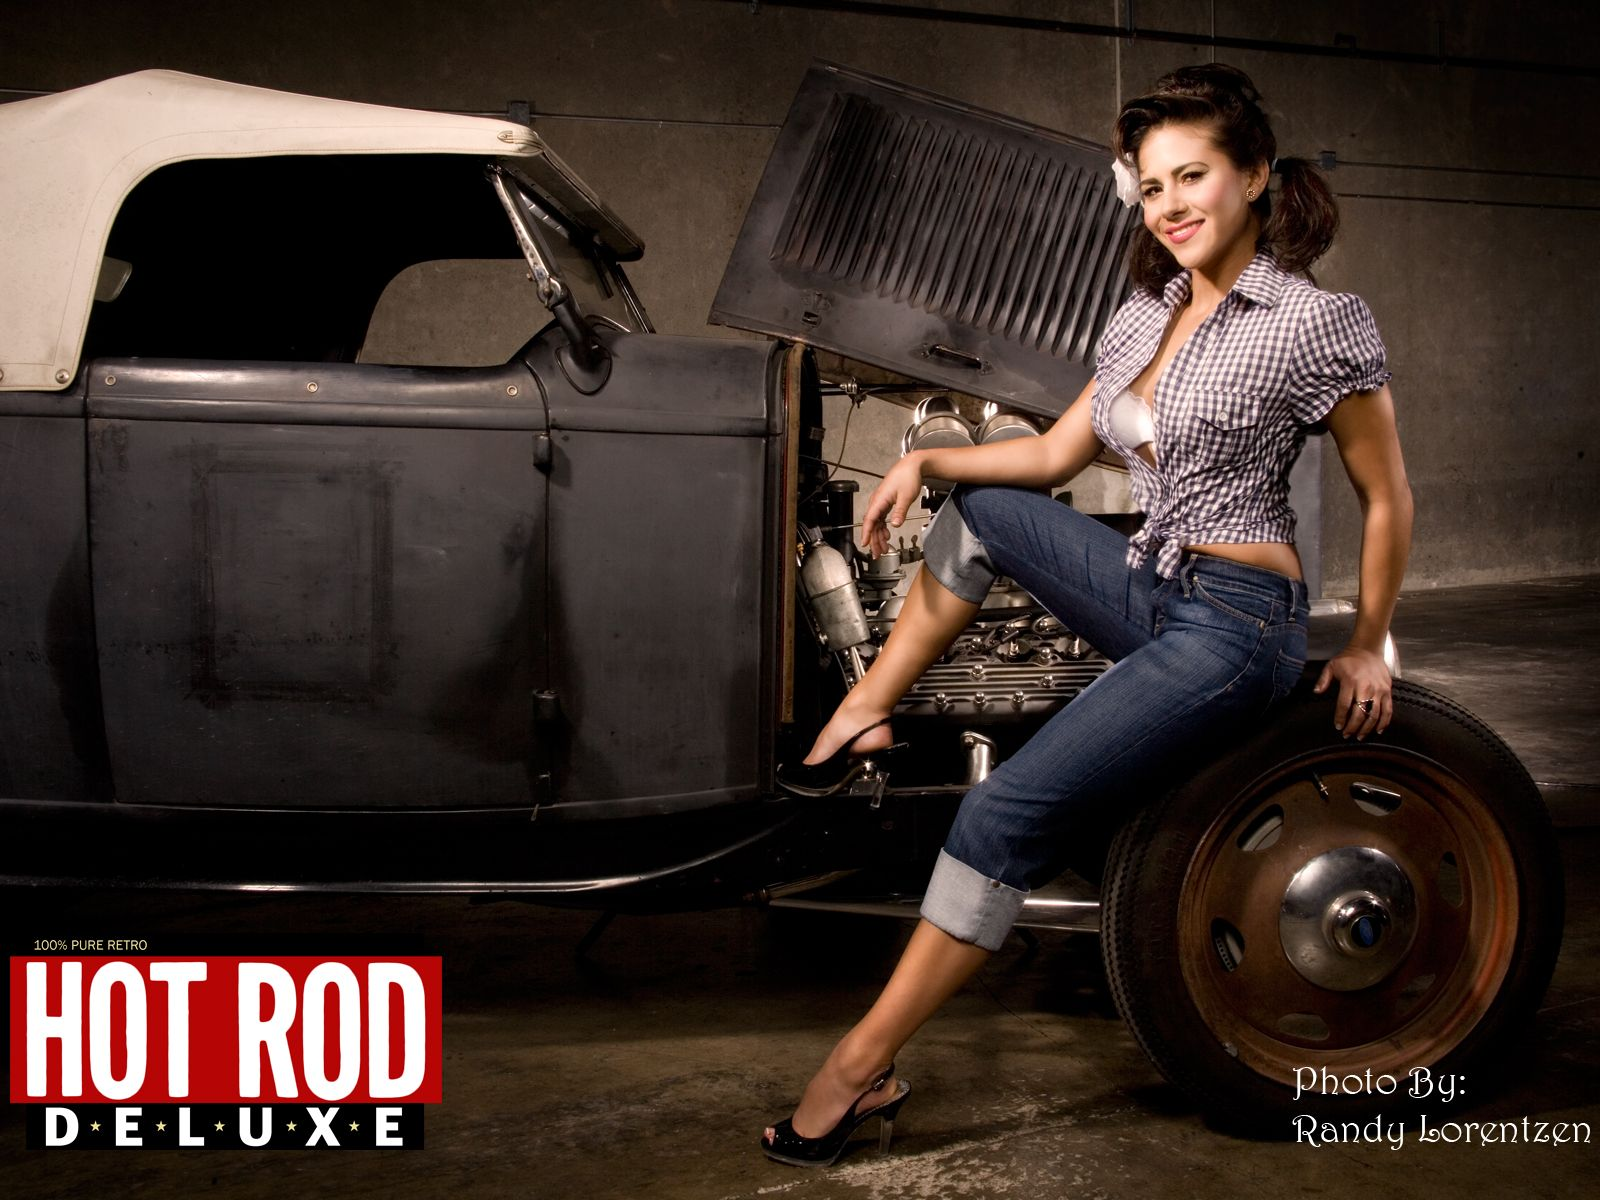 Remarkable, girl and hot rod muscle car wallpaper